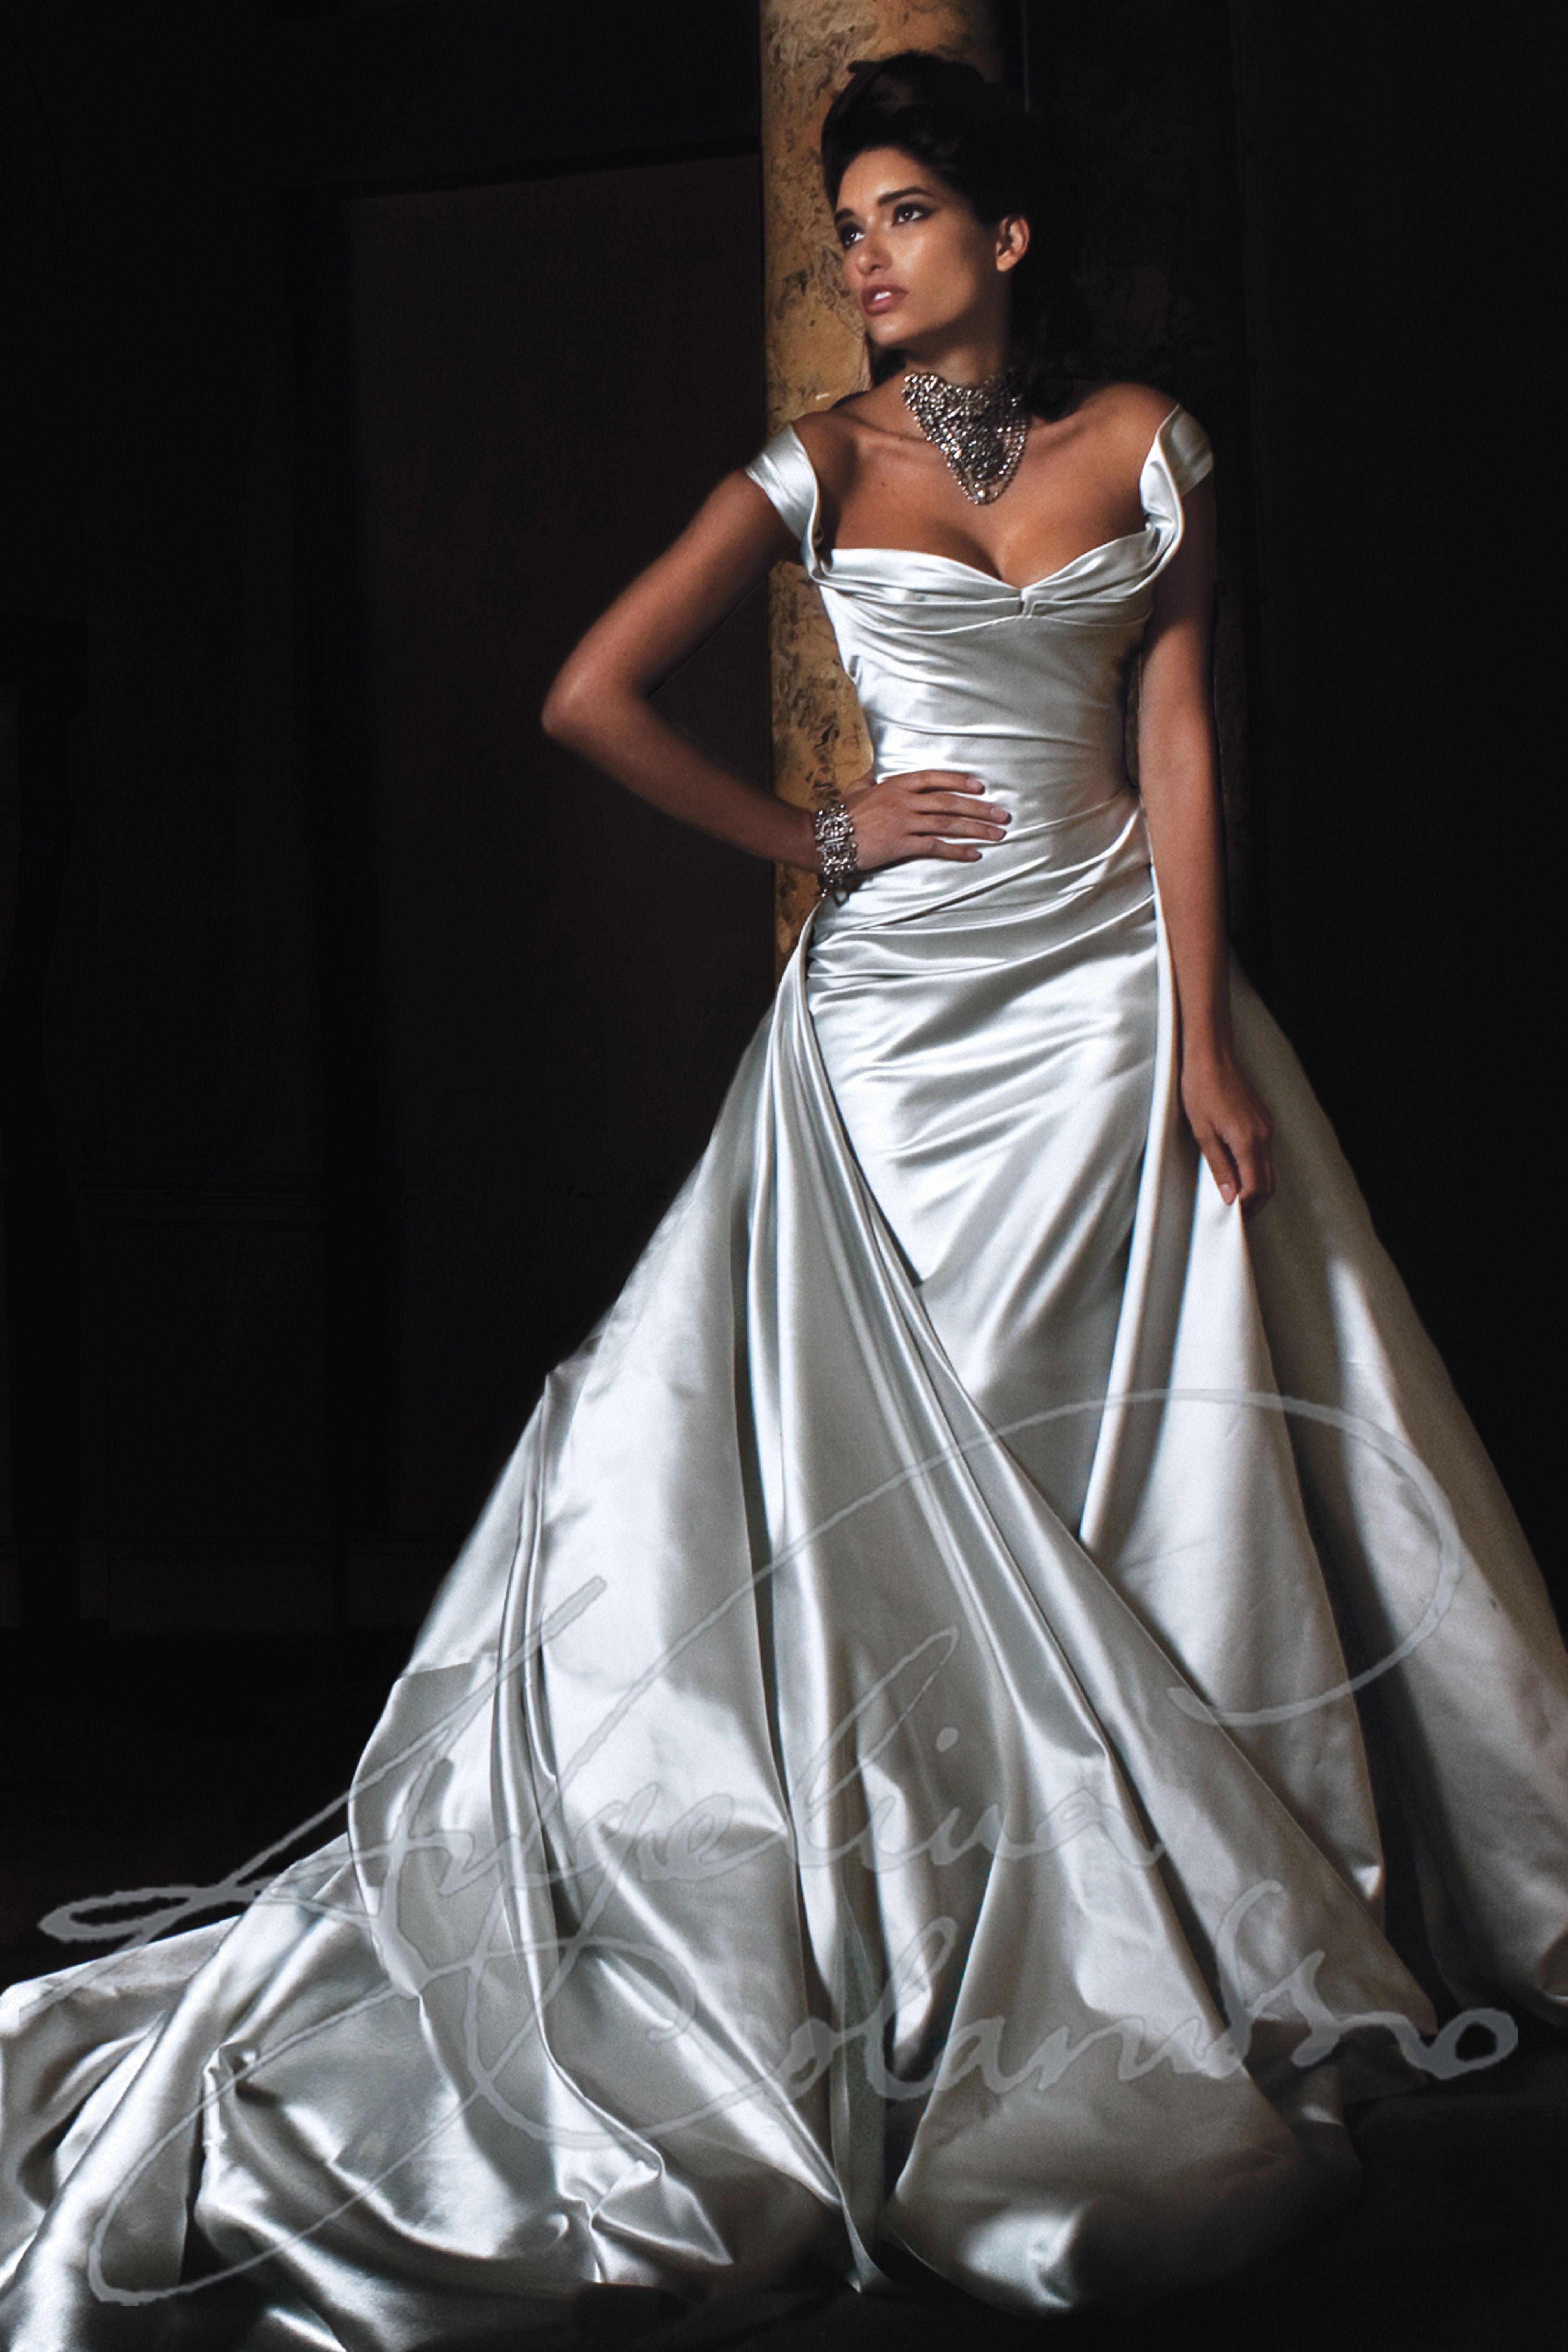 Affordable wedding dress designers uk national lottery